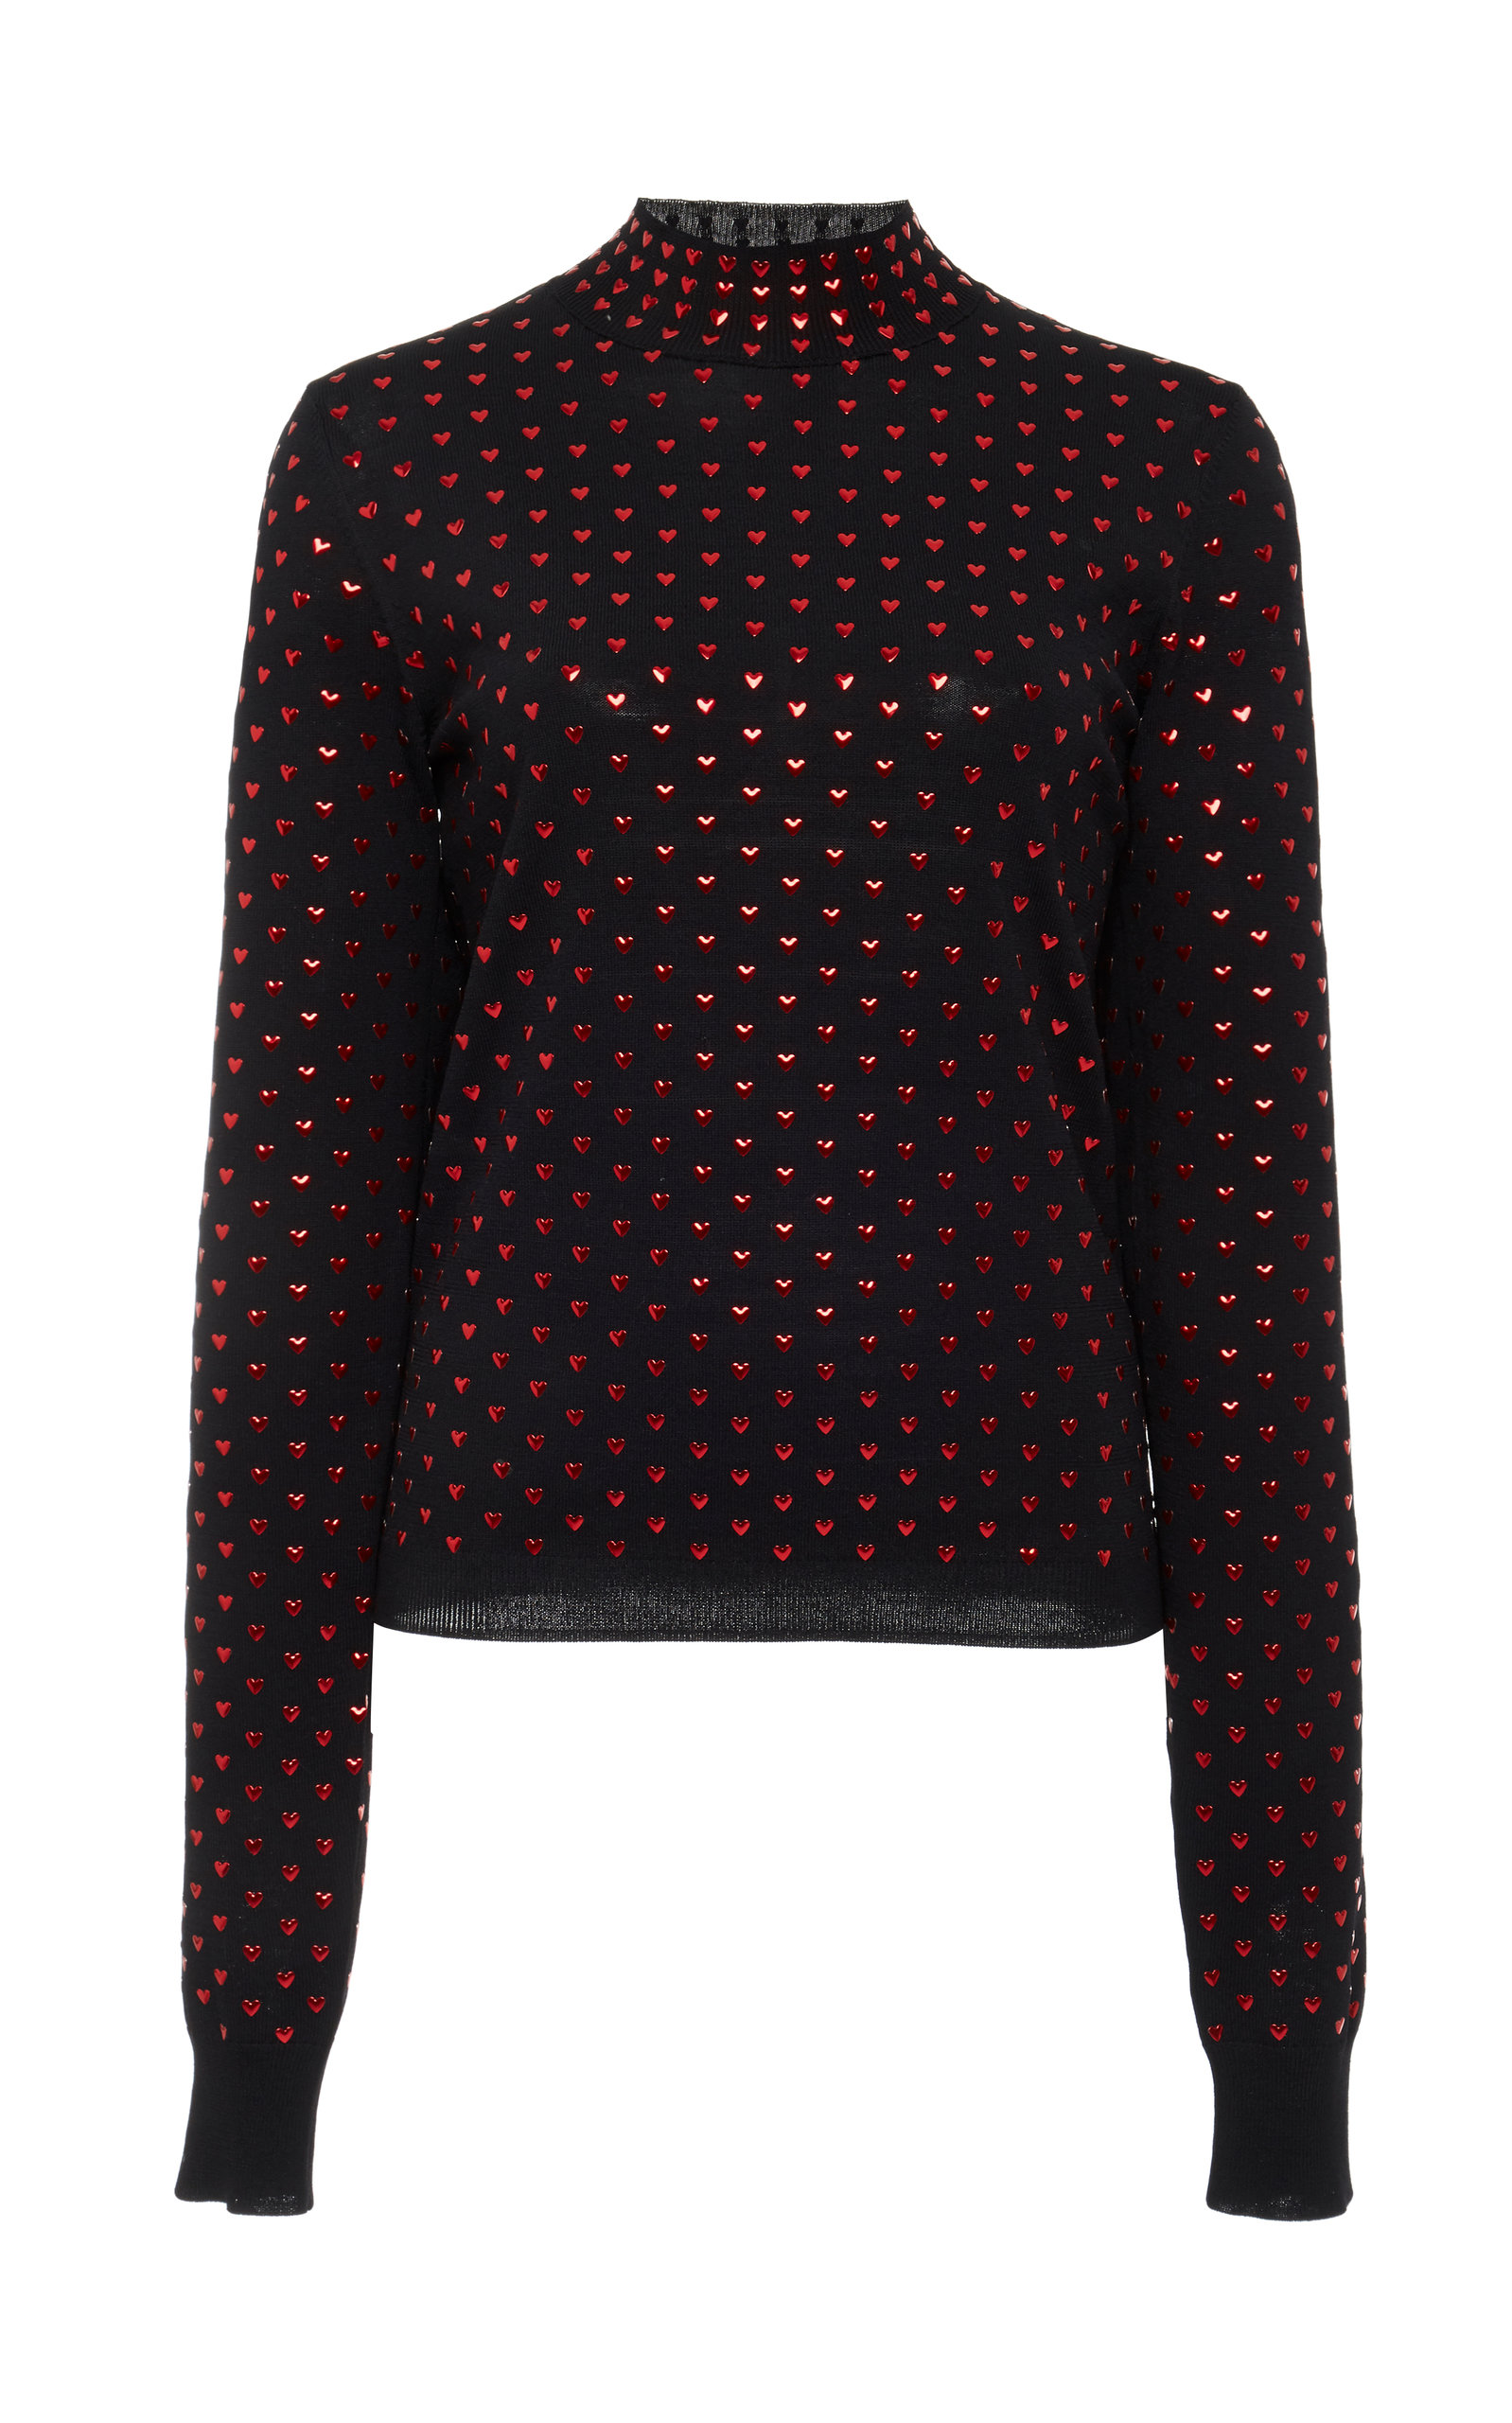 ADAM SELMAN Mock Neck Top in Black